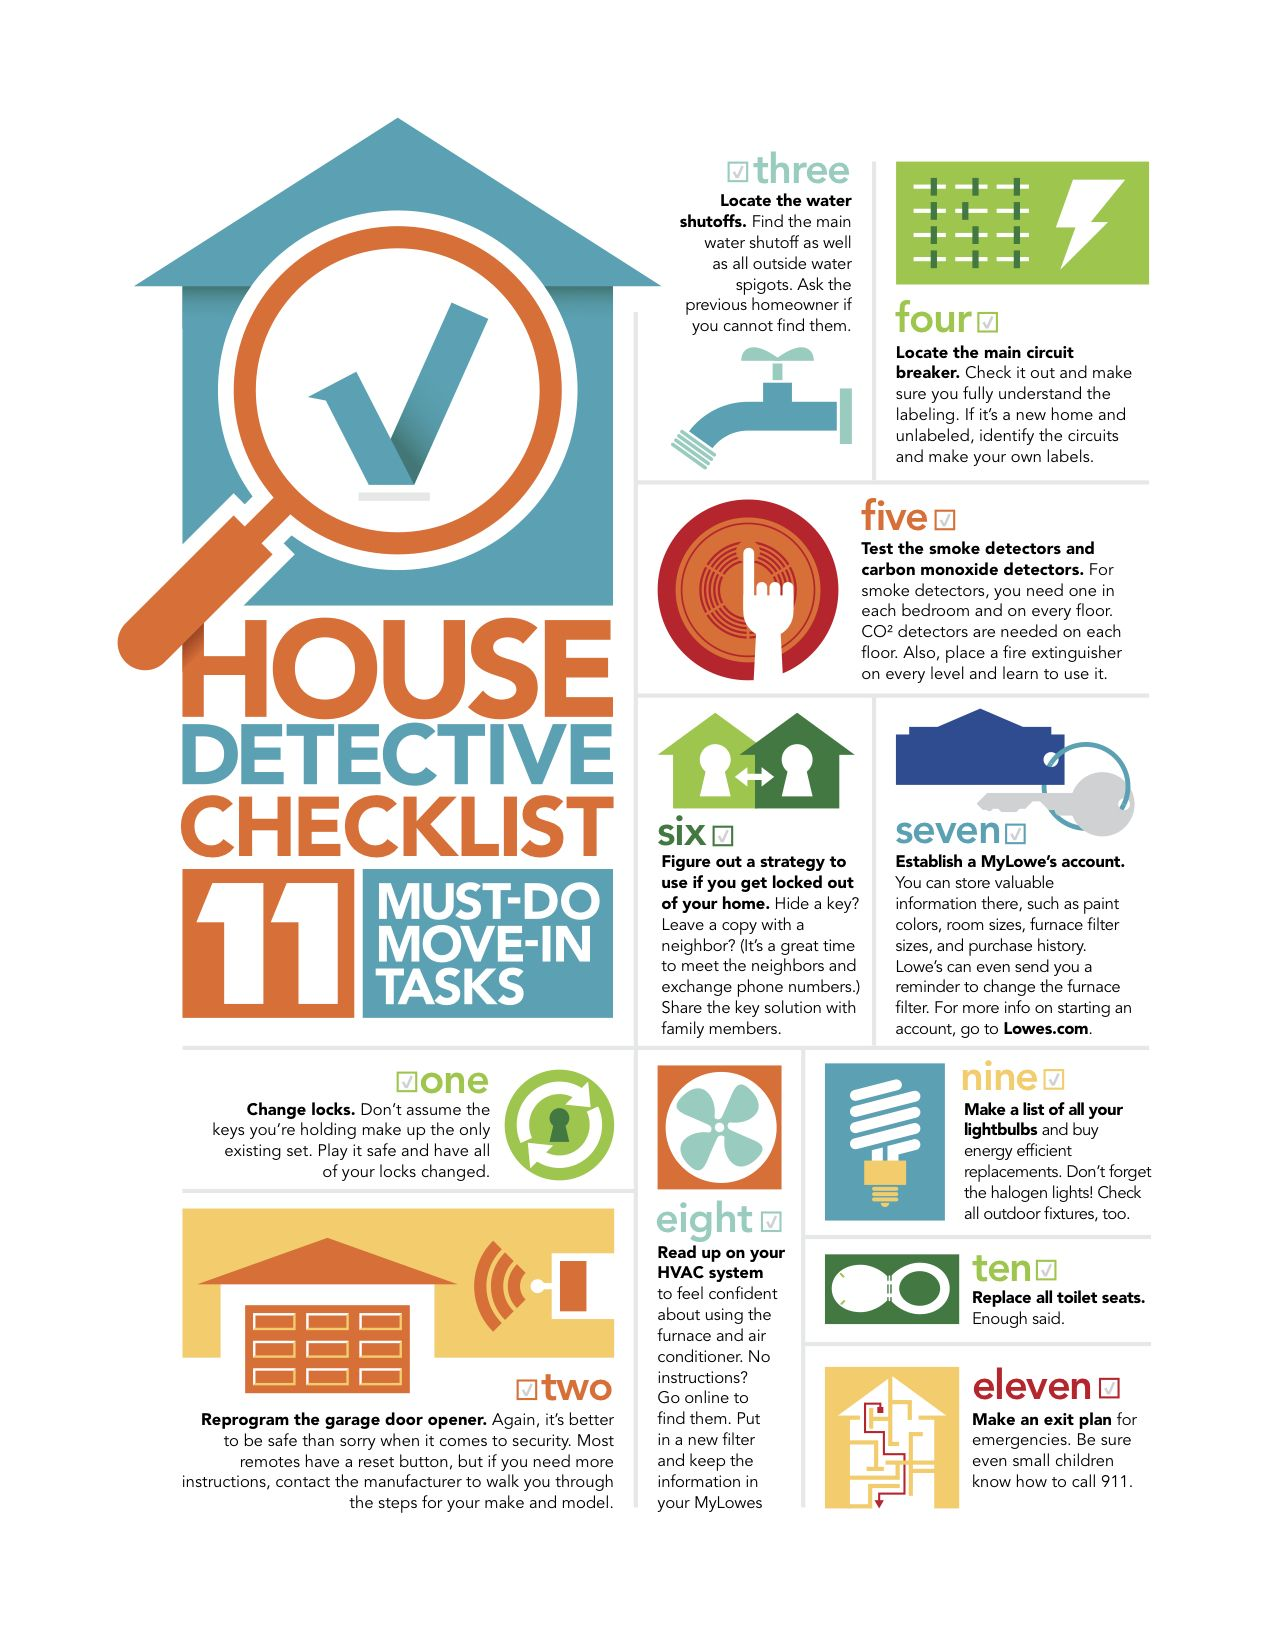 House Detective Checklist: 11 Must-Do Move-In Tasks (seems to be